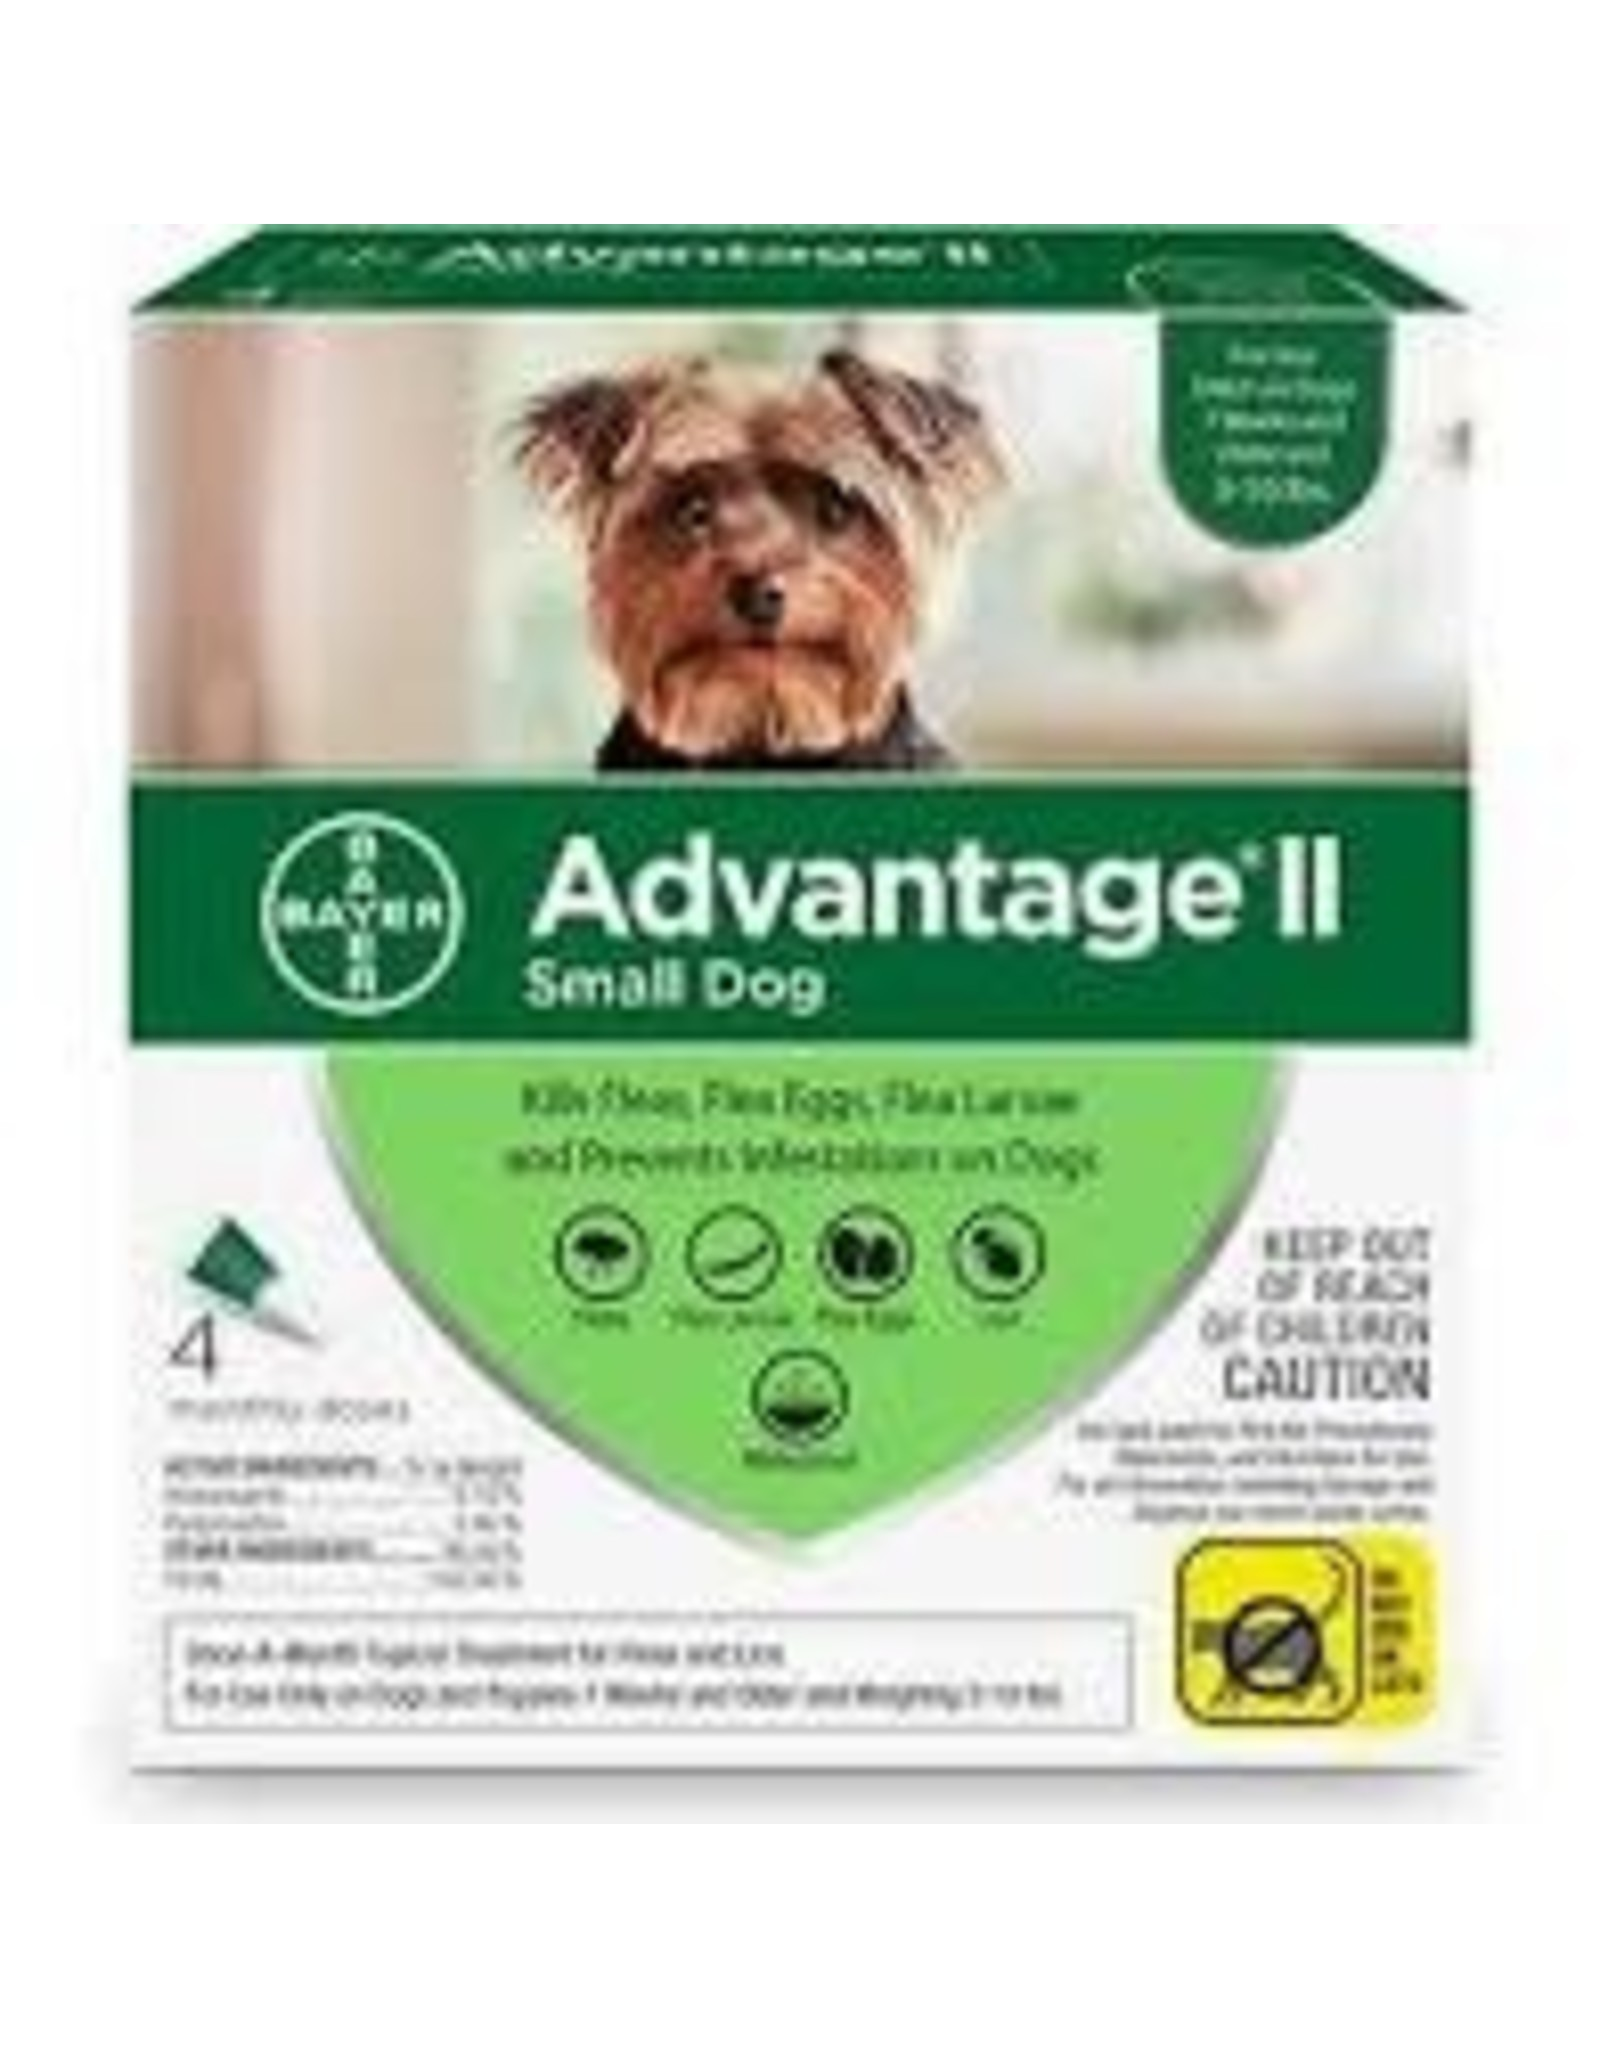 50/50 Pet Supply Advantage (Green) Under 10 lbs each